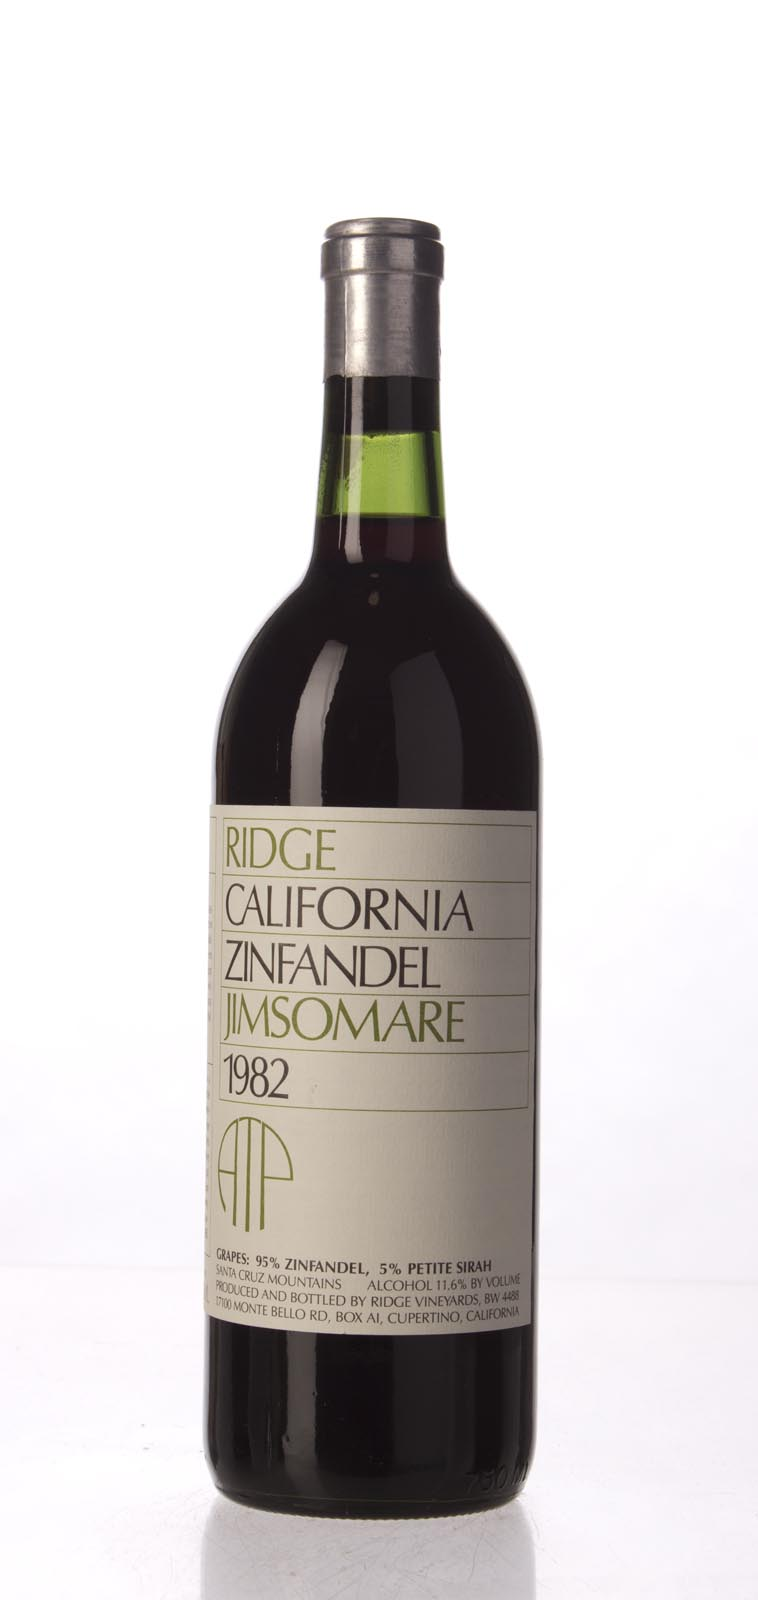 Ridge Zinfandel Jimsonare 1982, 750mL () from The BPW - Merchants of rare and fine wines.